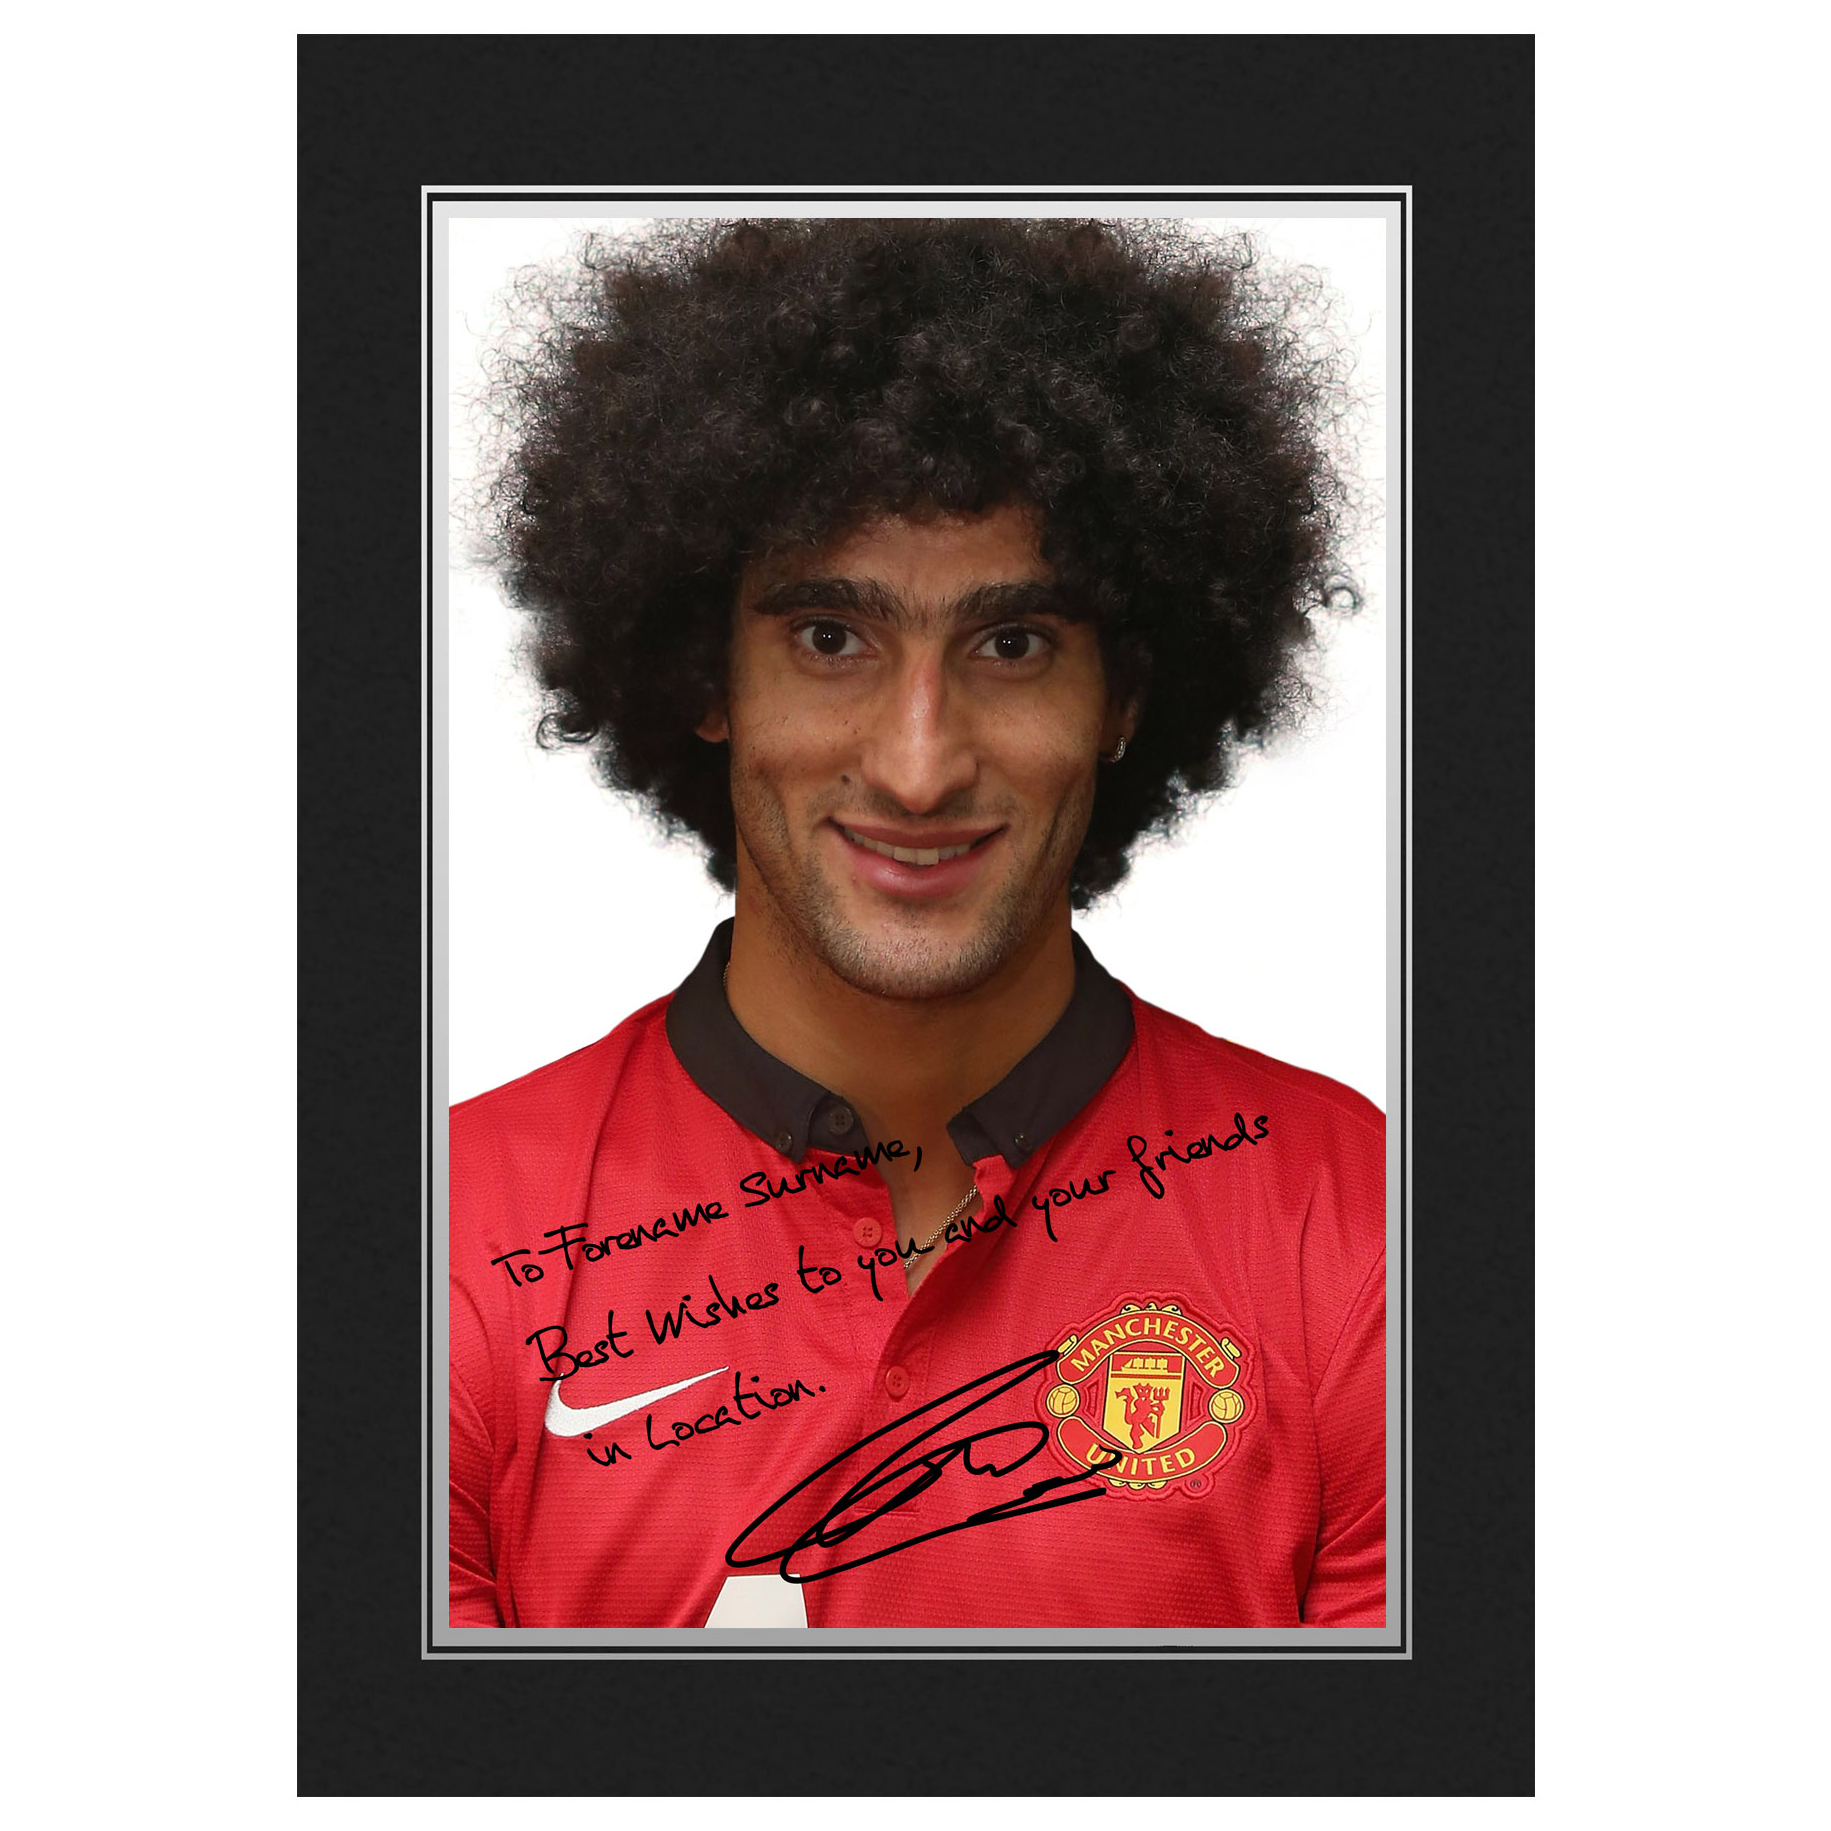 Manchester United Personalised Signature Photo in Presentation Folder - Fellaini